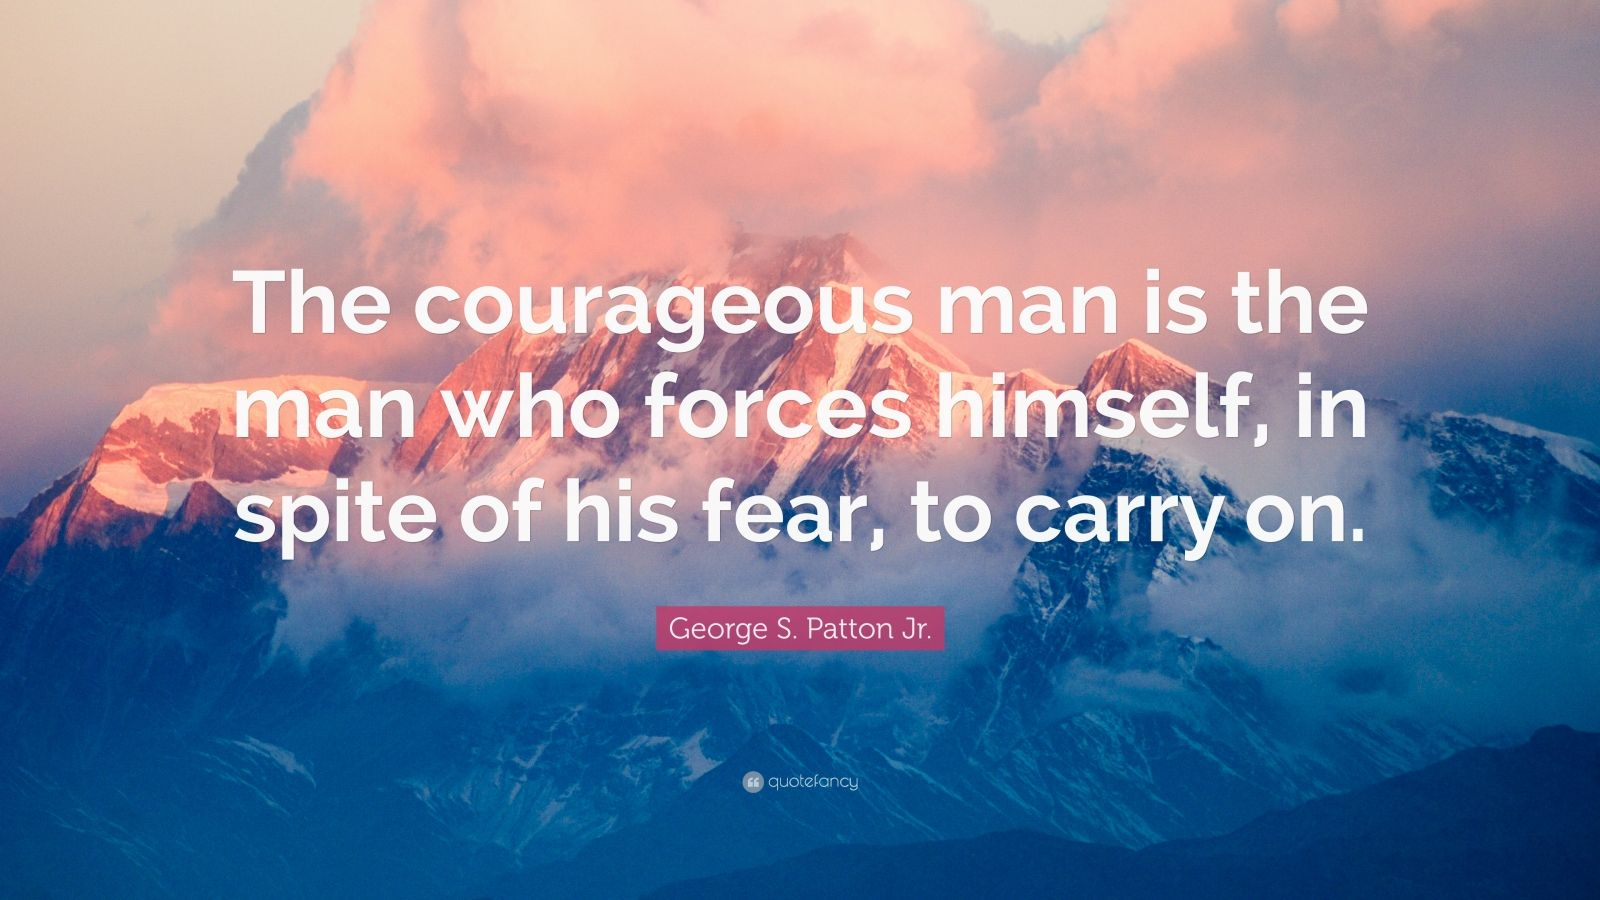 """George S. Patton Jr. Quote: """"The courageous man is the man who forces himself, in spite of his fear, to carry on."""""""